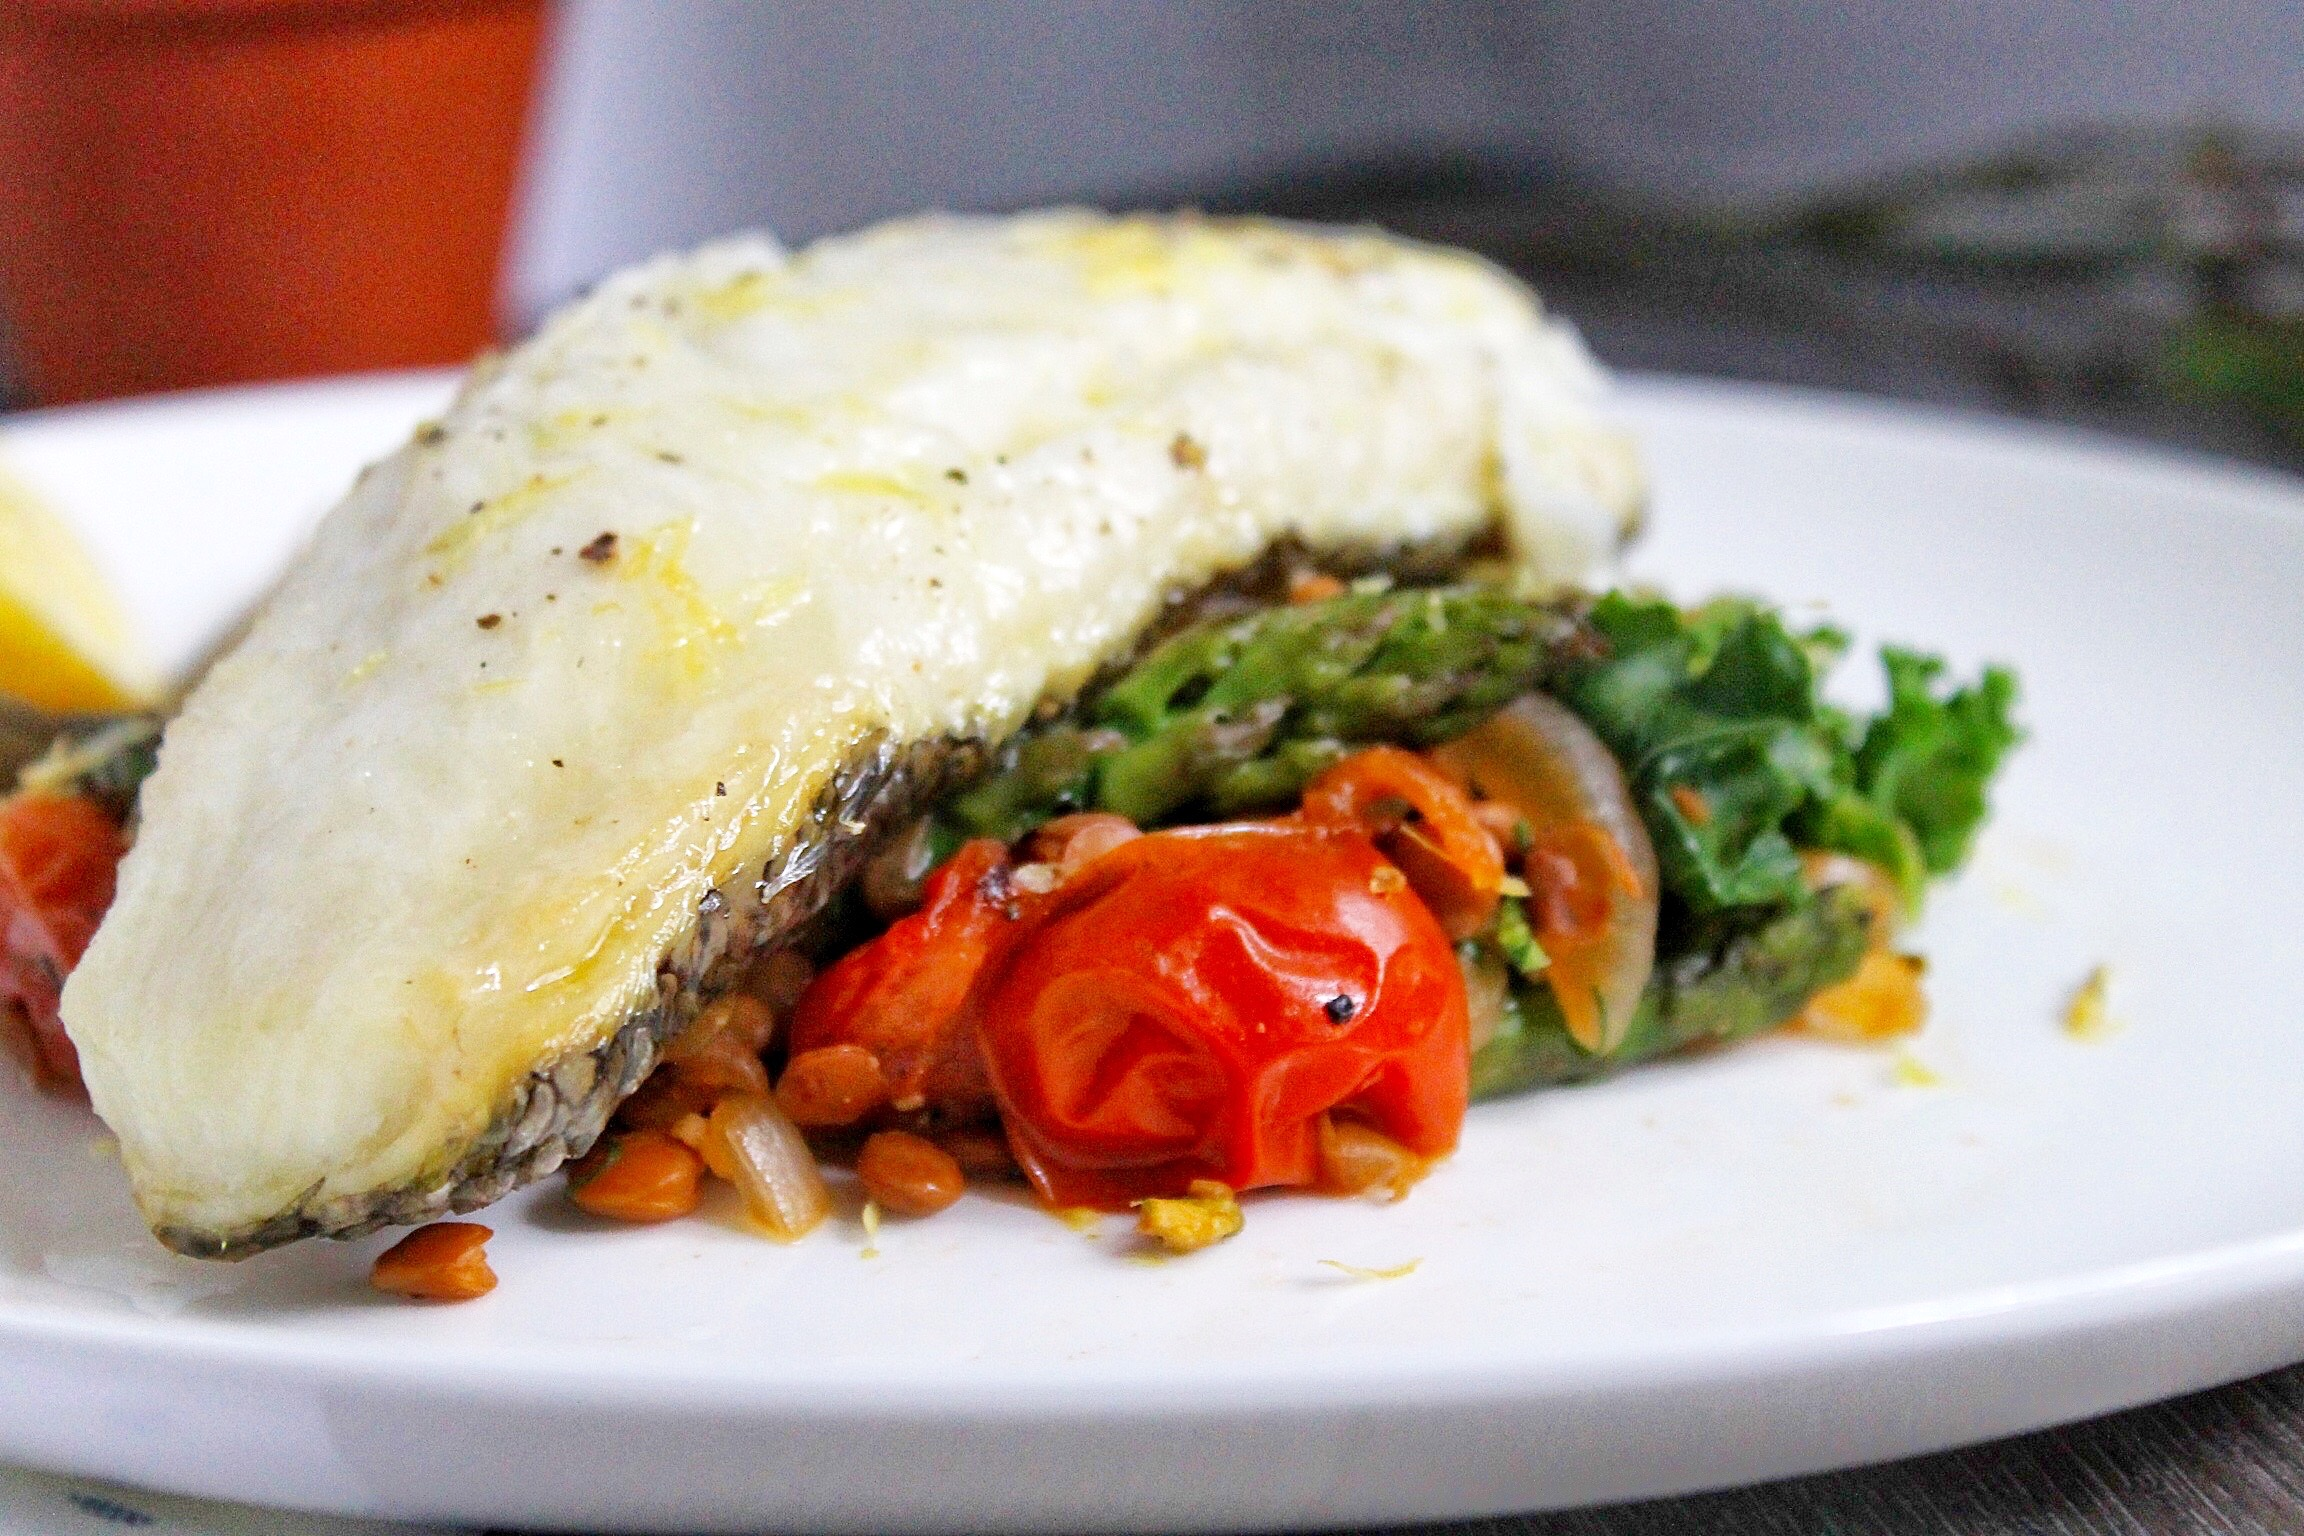 Sea Bass with Lentils, Tomatoes and Asparagus